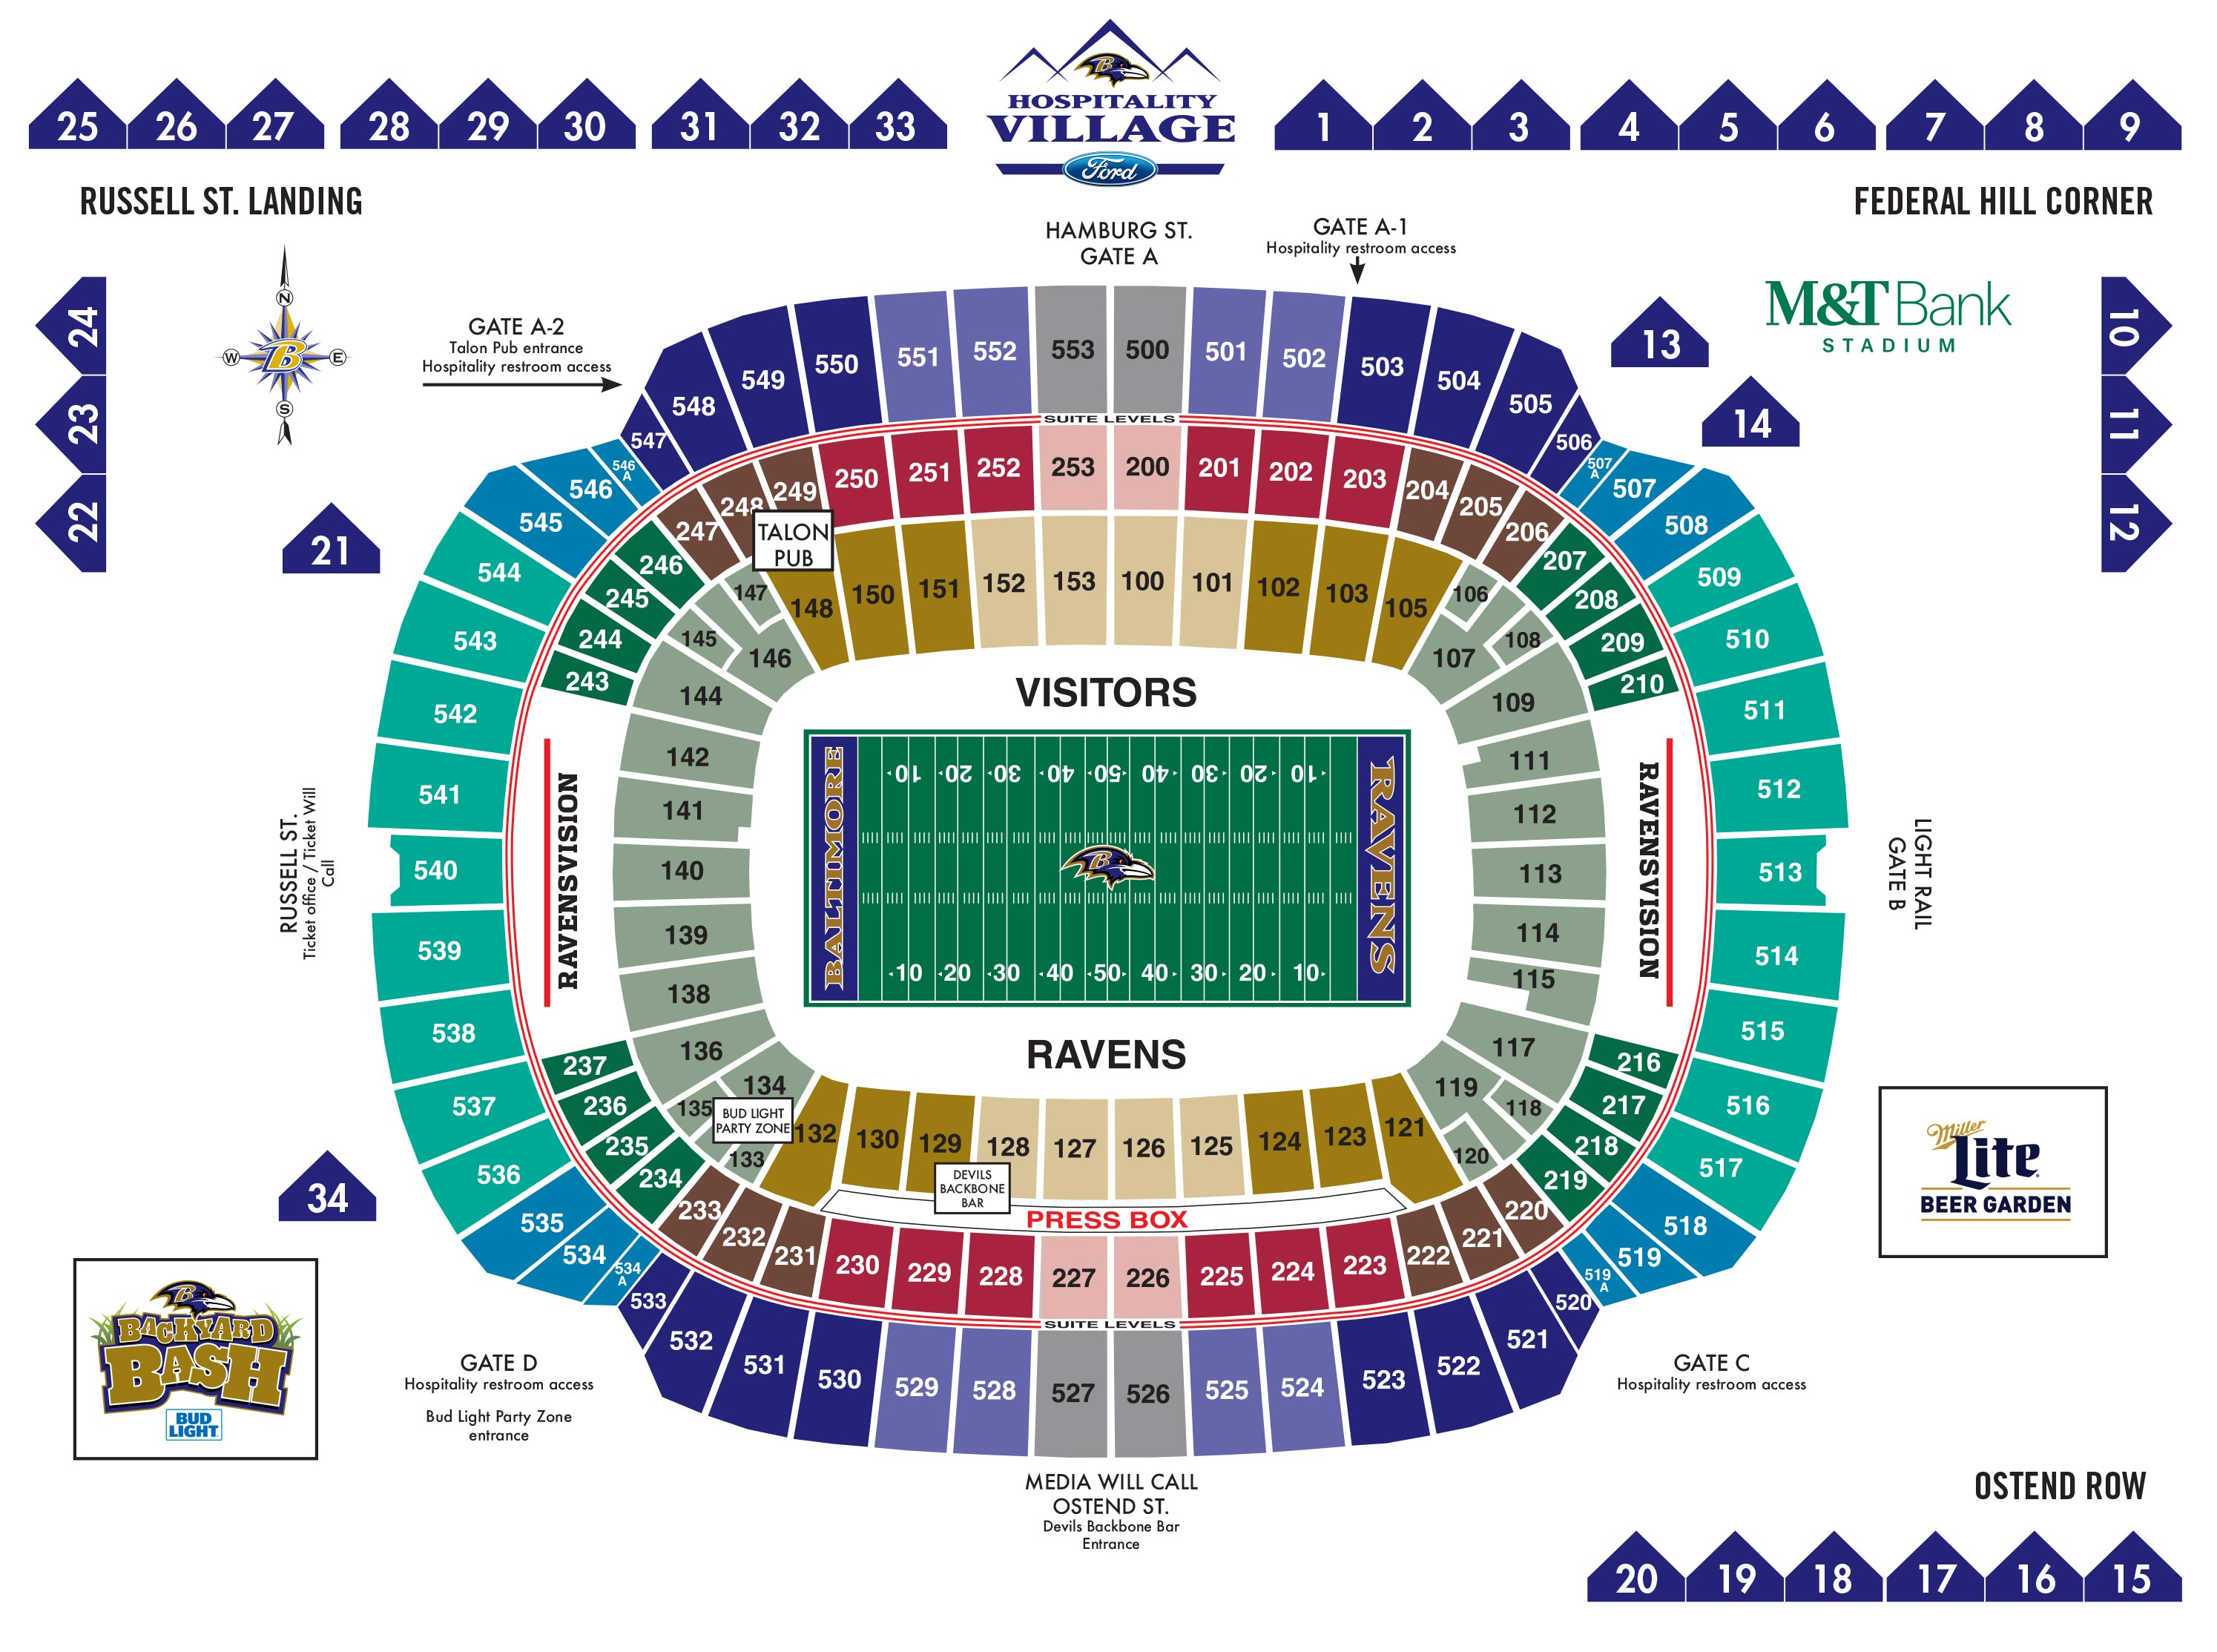 Baltimore Ravens Map M&T Bank Stadium Diagrams | Baltimore Ravens – baltimoreravens.com